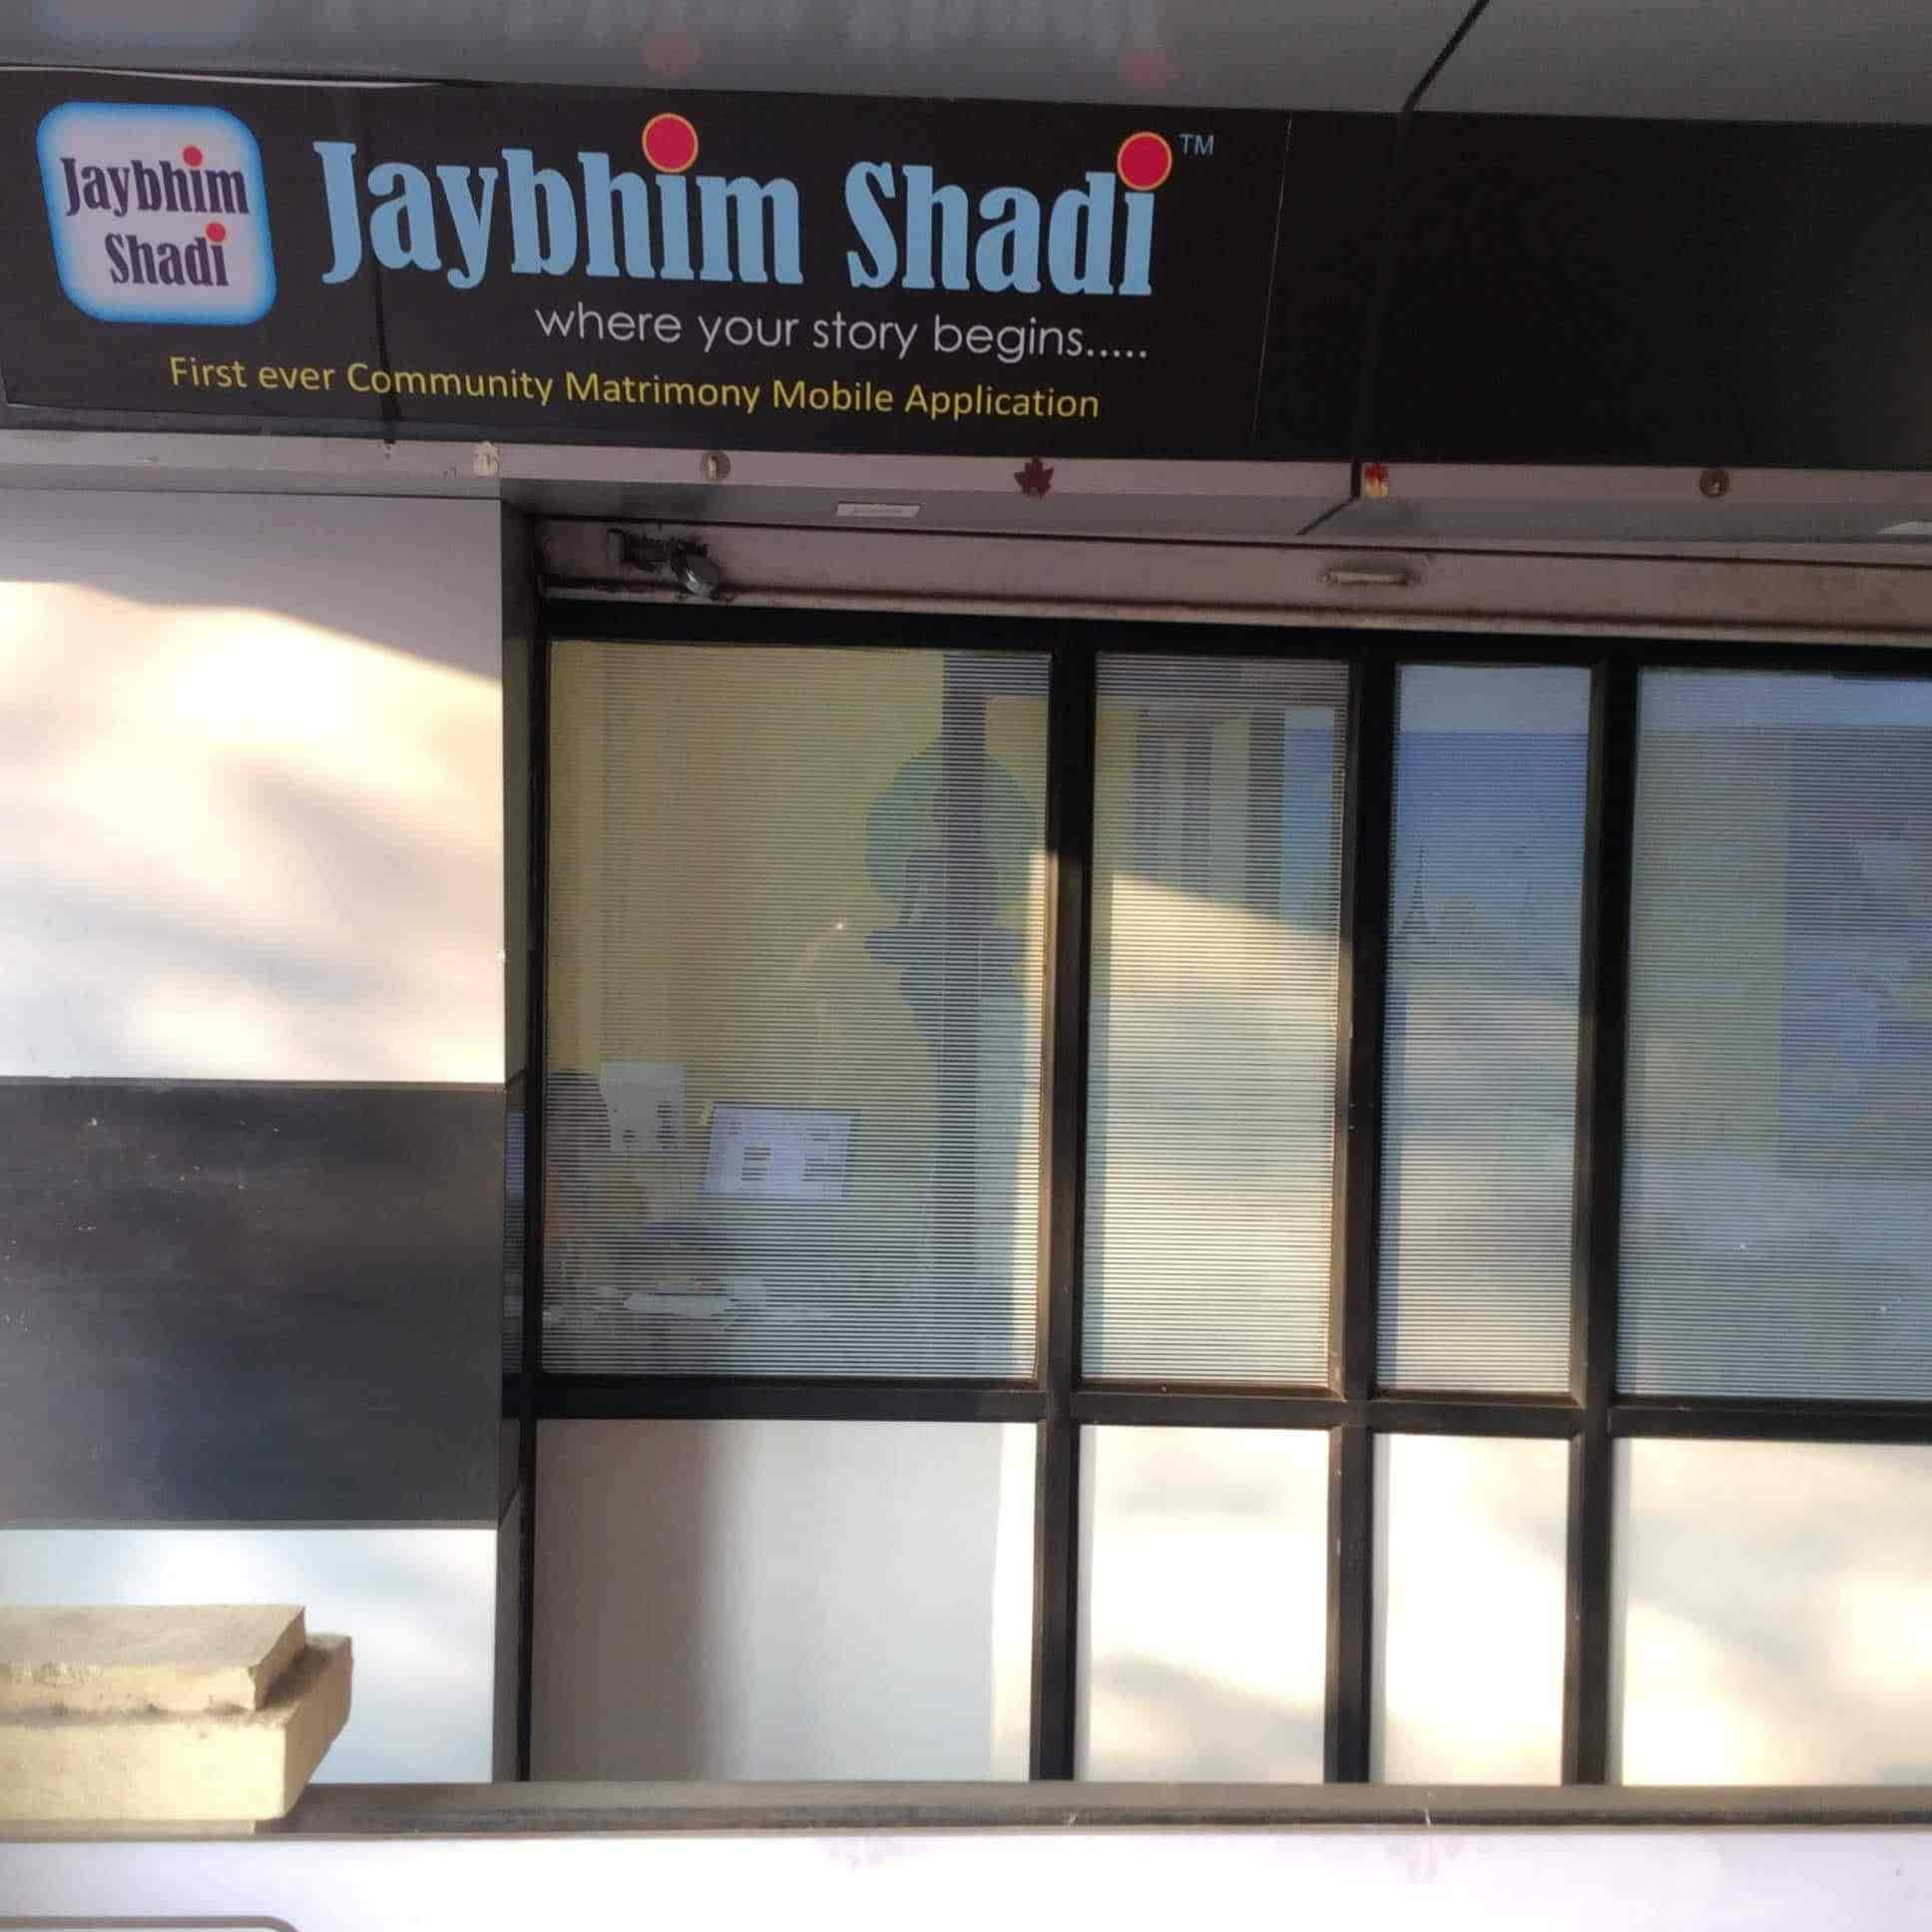 Jaybhim Shadi, Nashik Road - Matrimonial Bureaus For